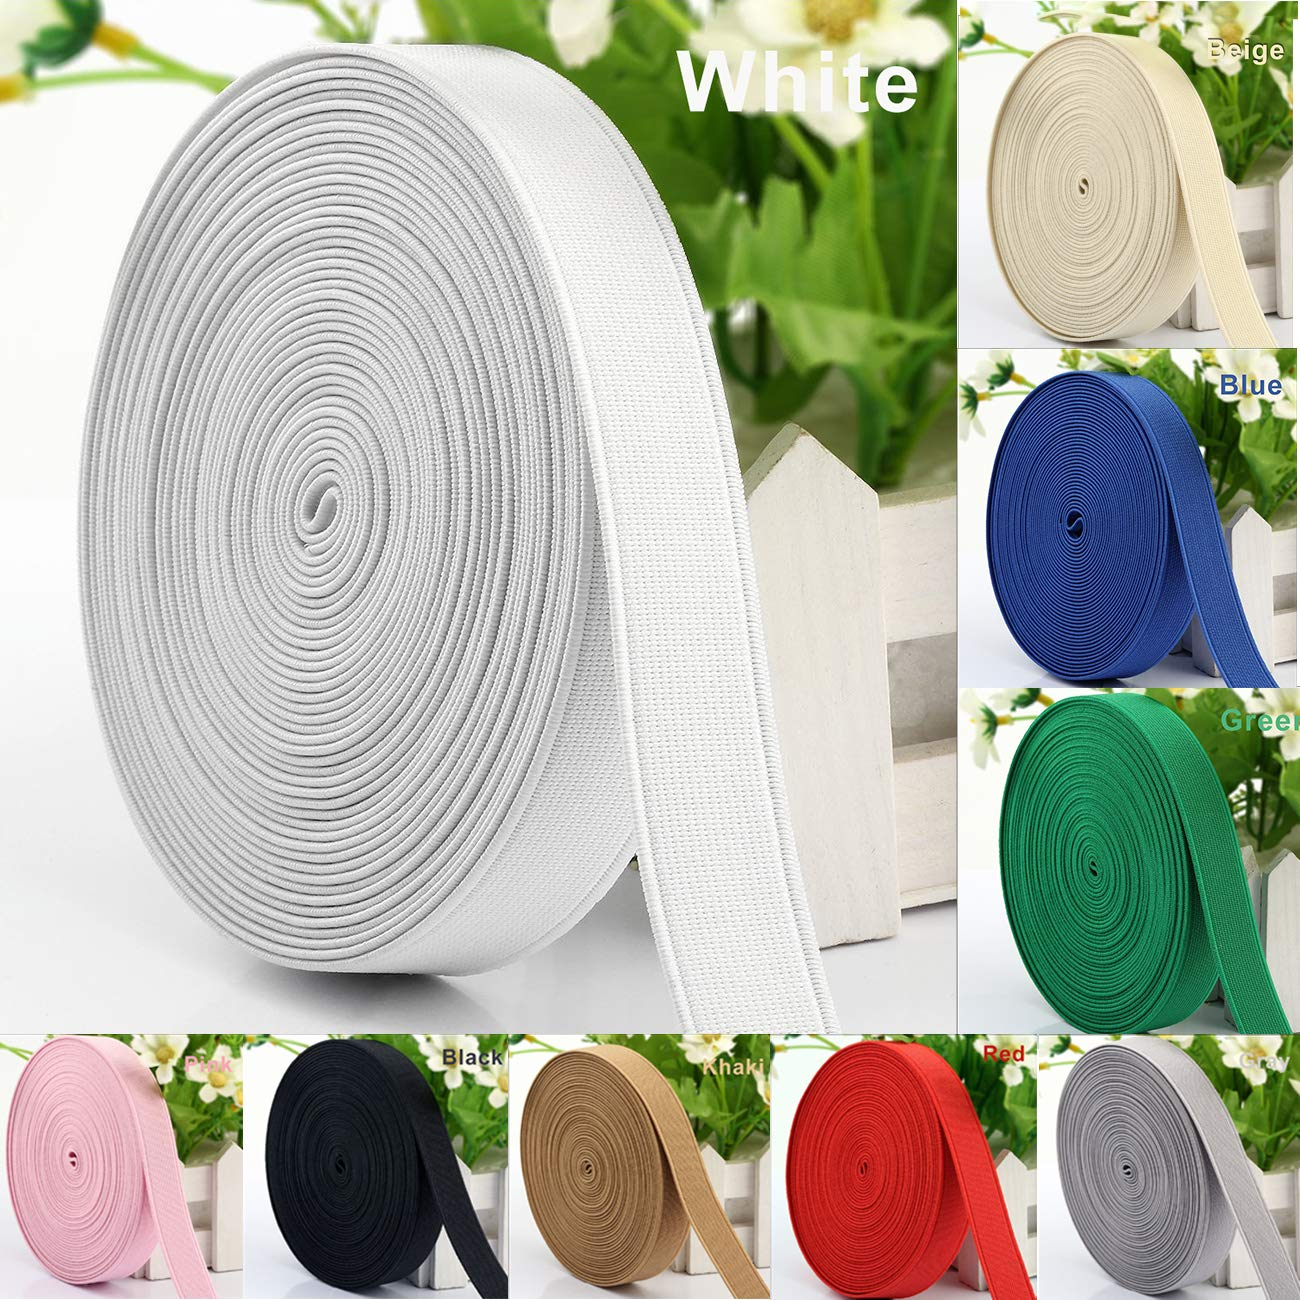 """Multicolors-5 Yards Fold Over Elastic Bands/Elastic Ribbon 3/4"""" Width for Sewing DIY Headbands, Wristbands, or Hair Ties (White)"""